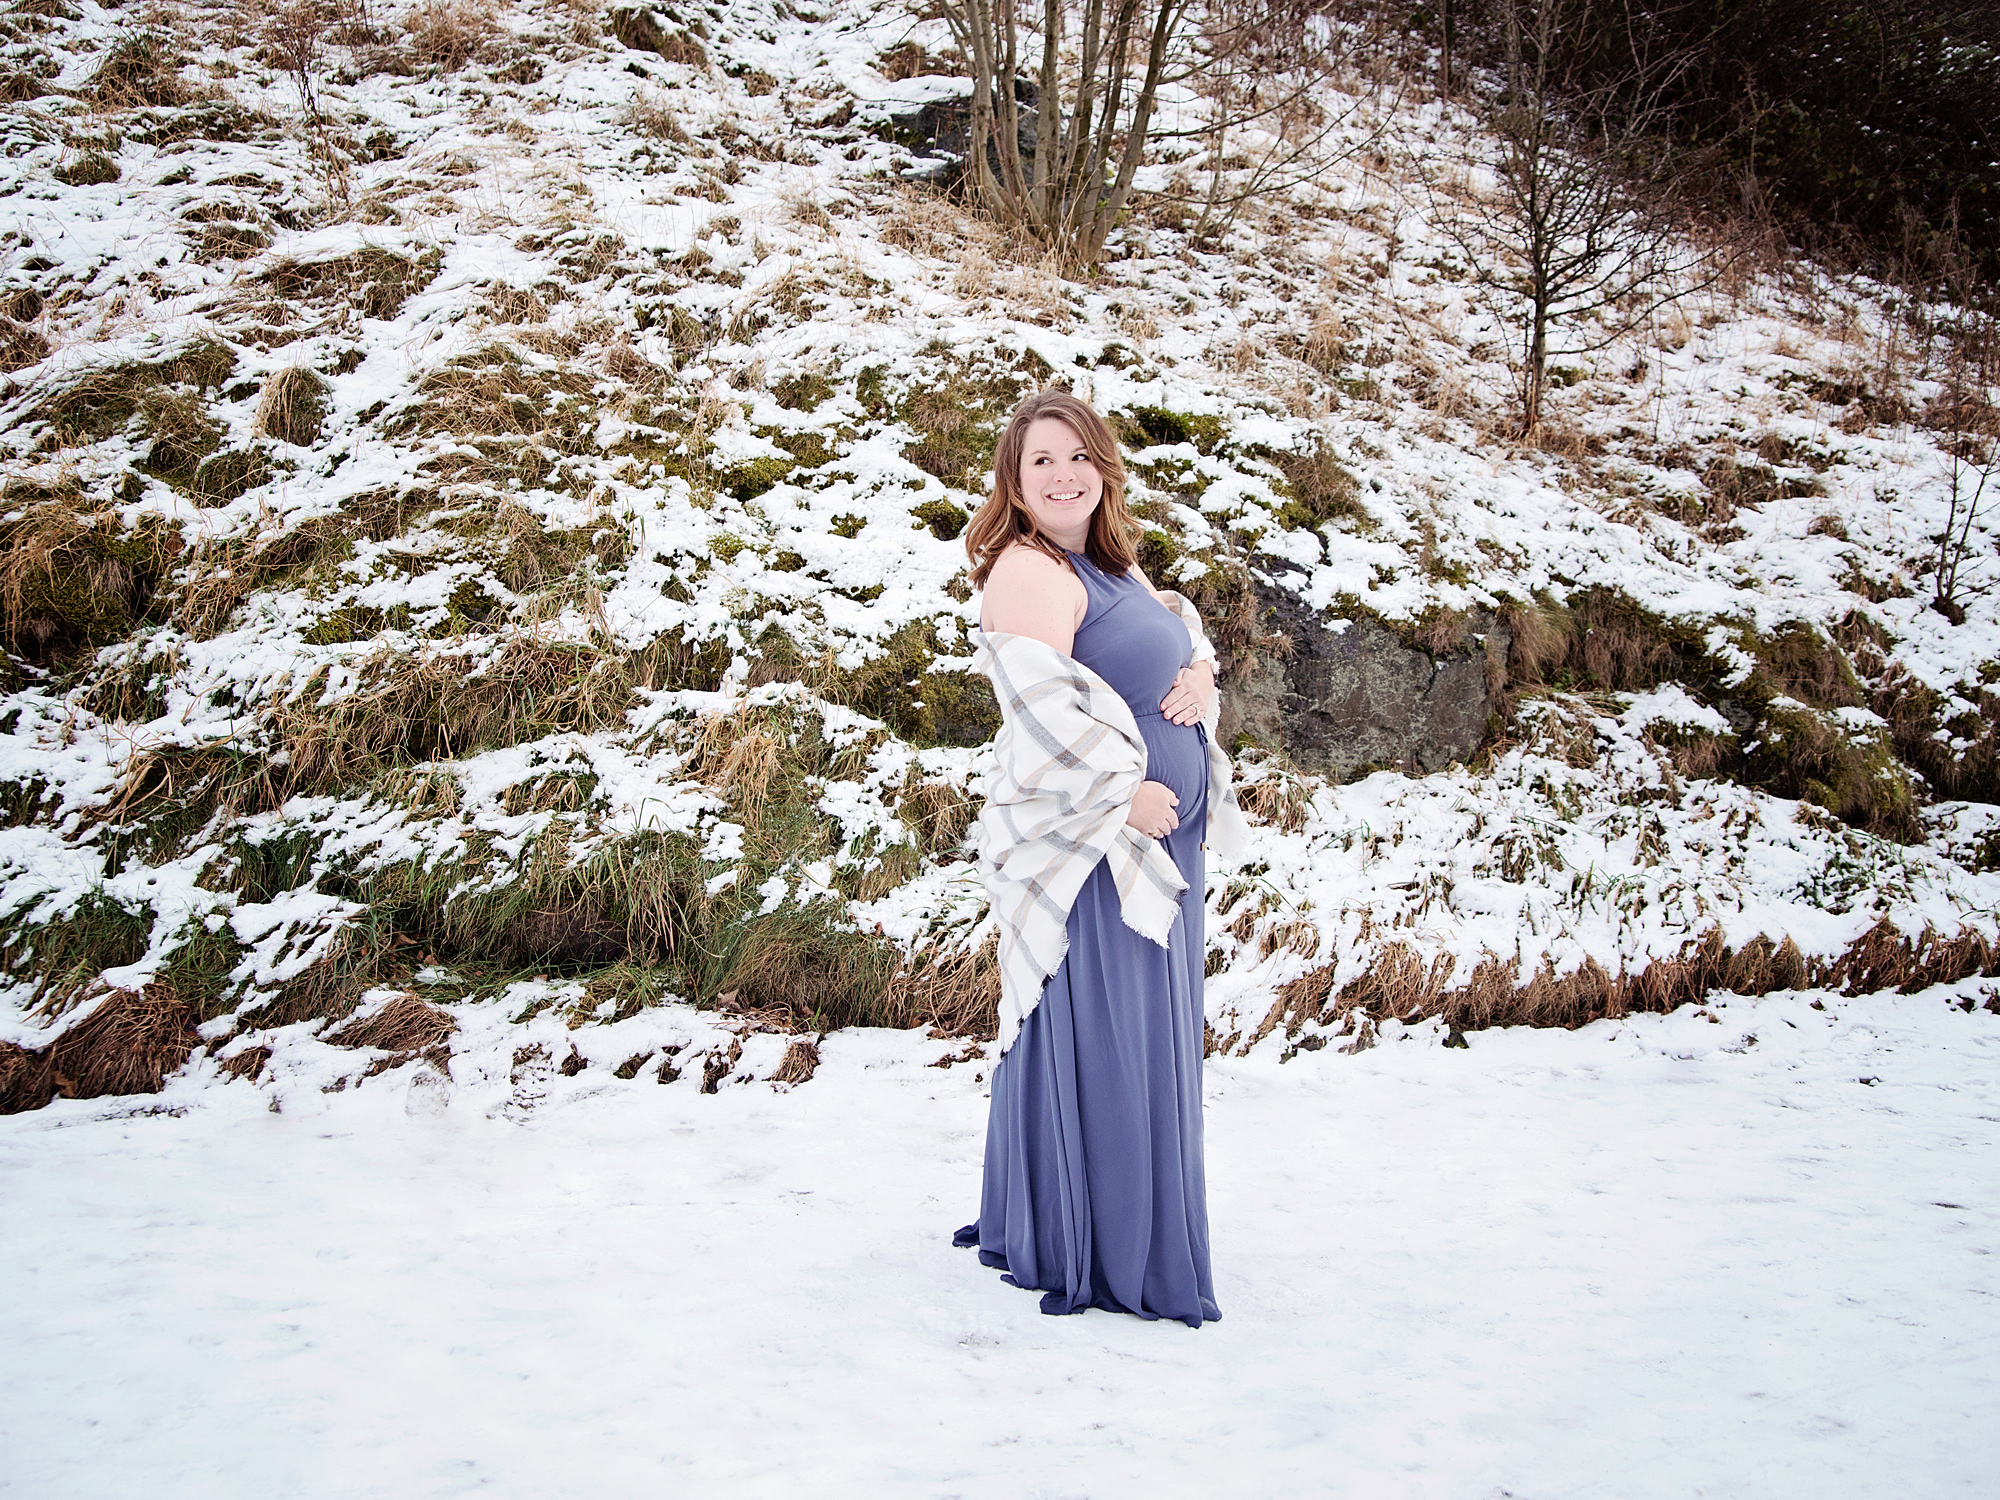 winter outdoor snow pregnancy maternity photography edinburgh midlothian